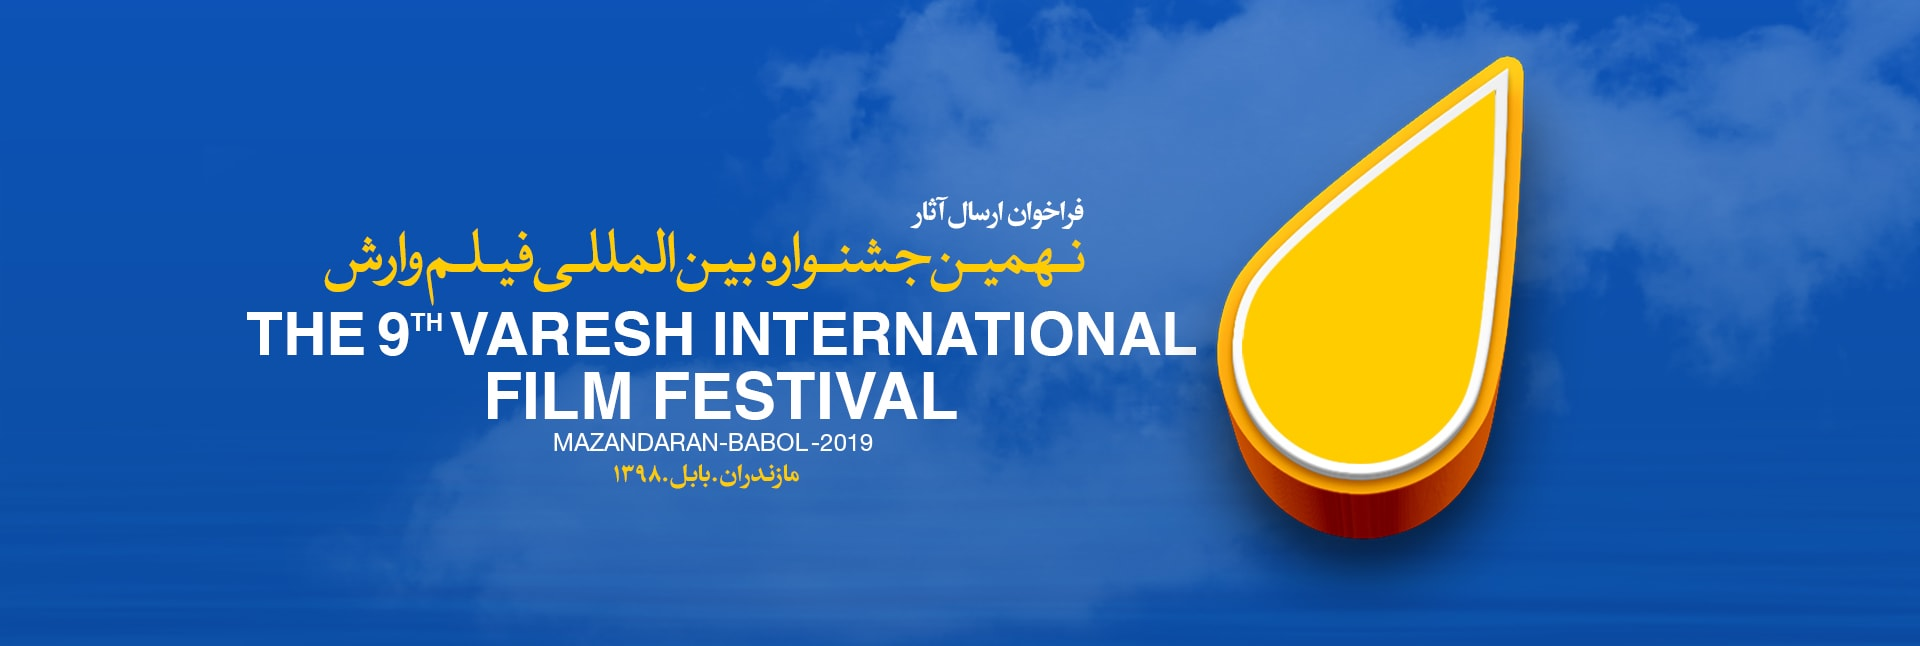 9th VARESH INTERNATIONAL FILM FESTIVAL